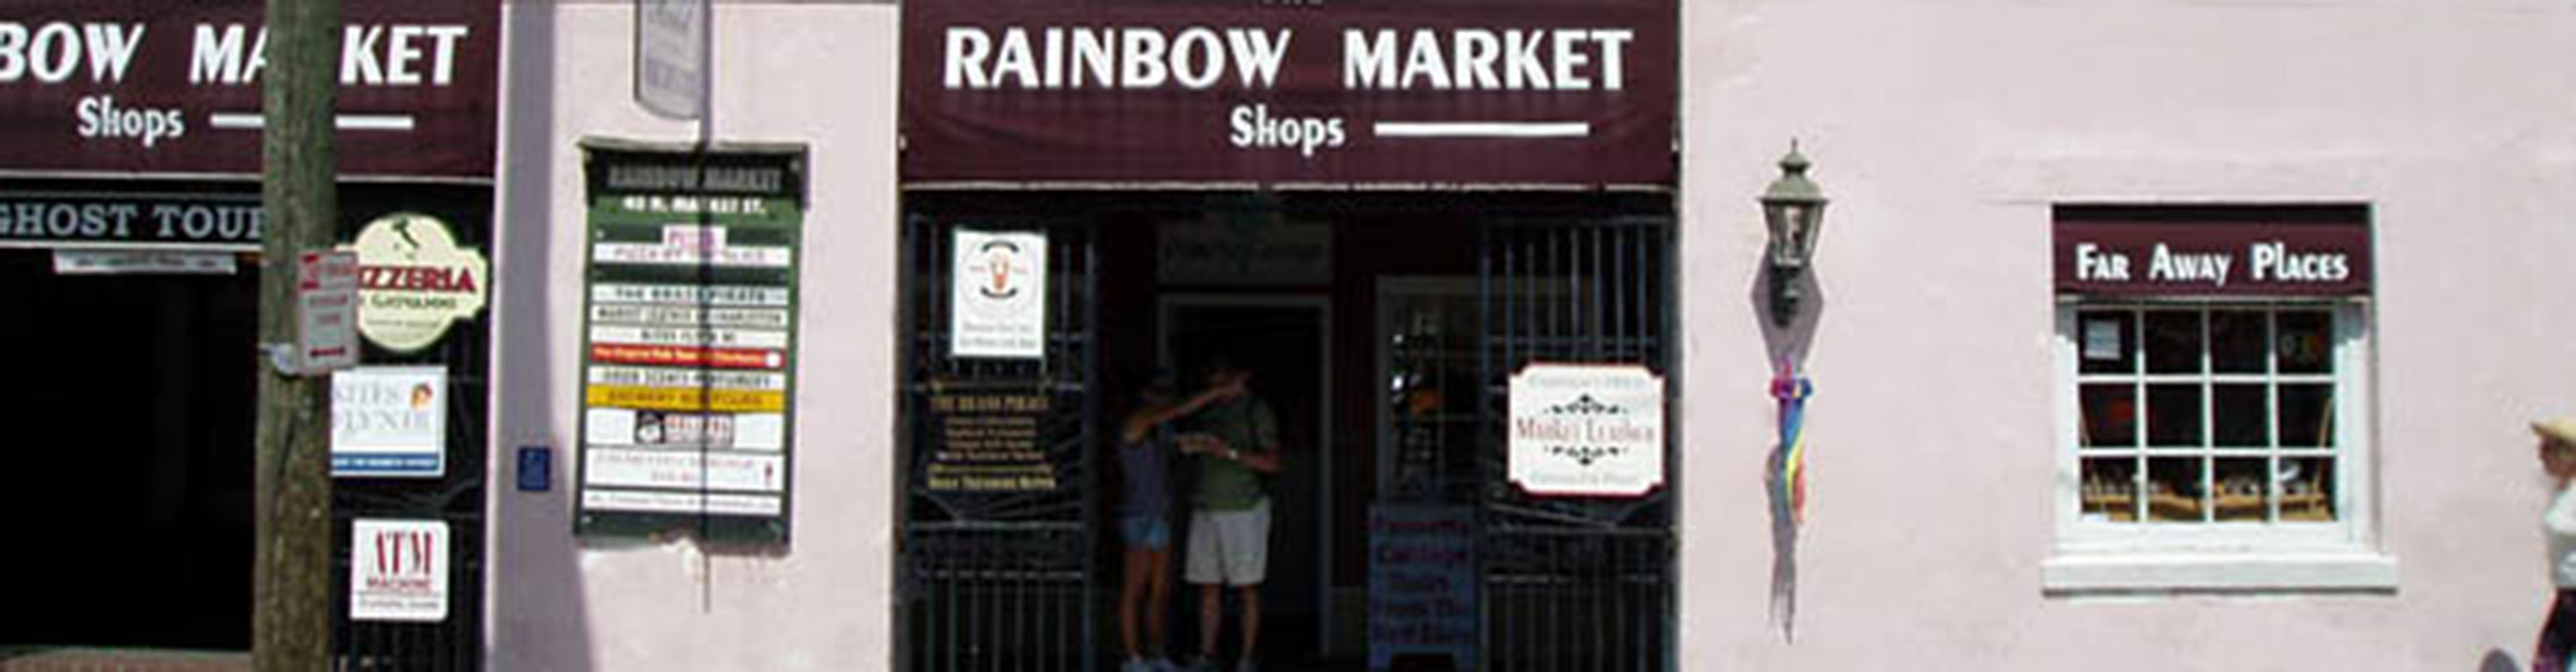 We are in the Rainbow Market Shops near the historic City Market.